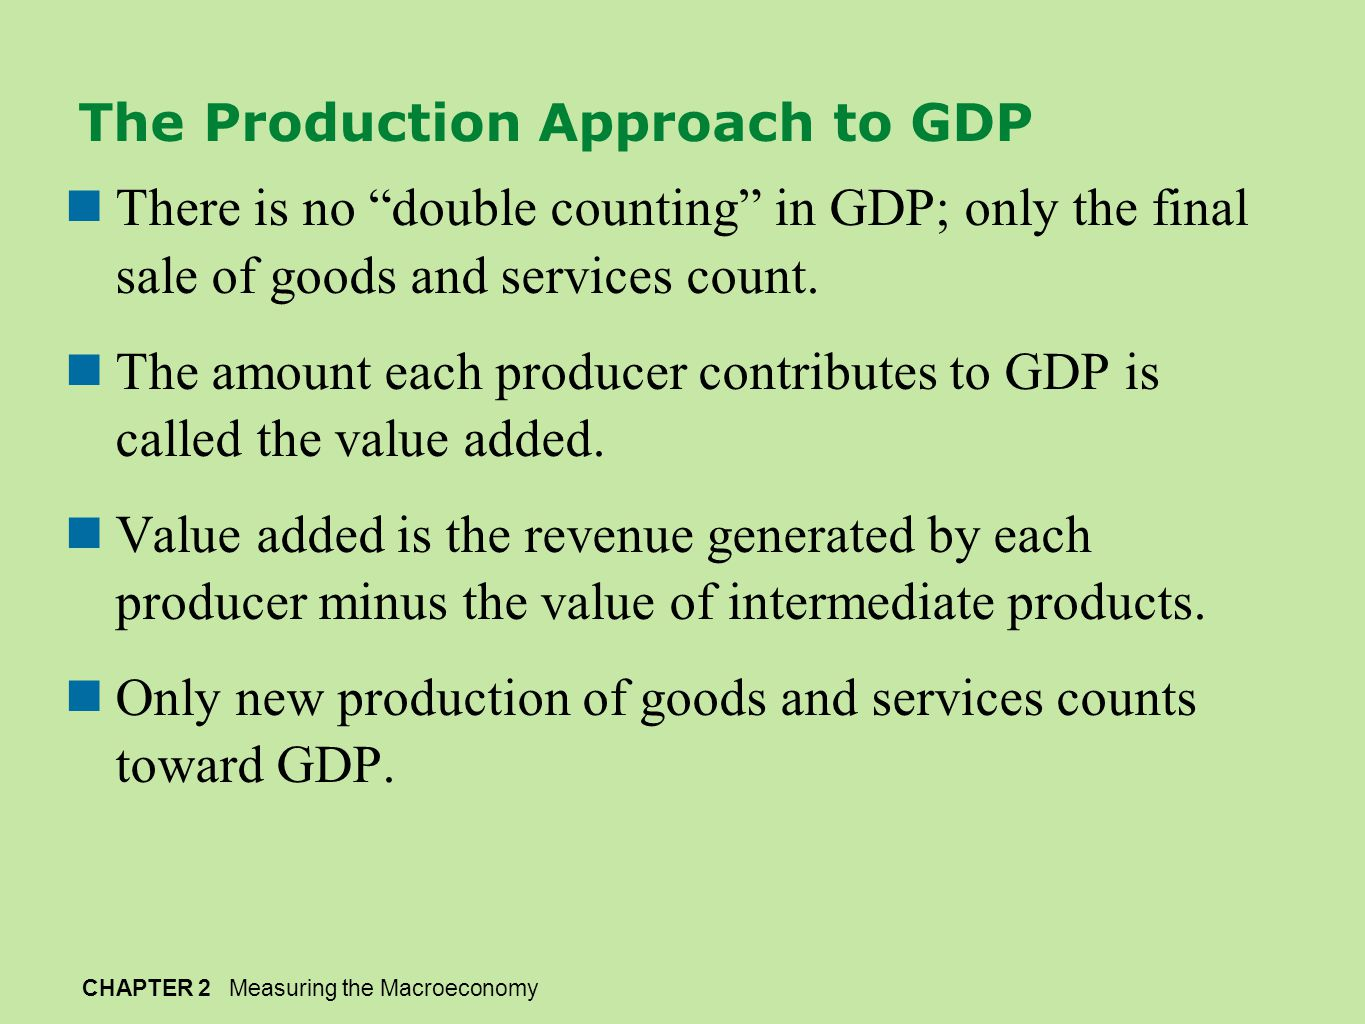 The Production Approach to GDP